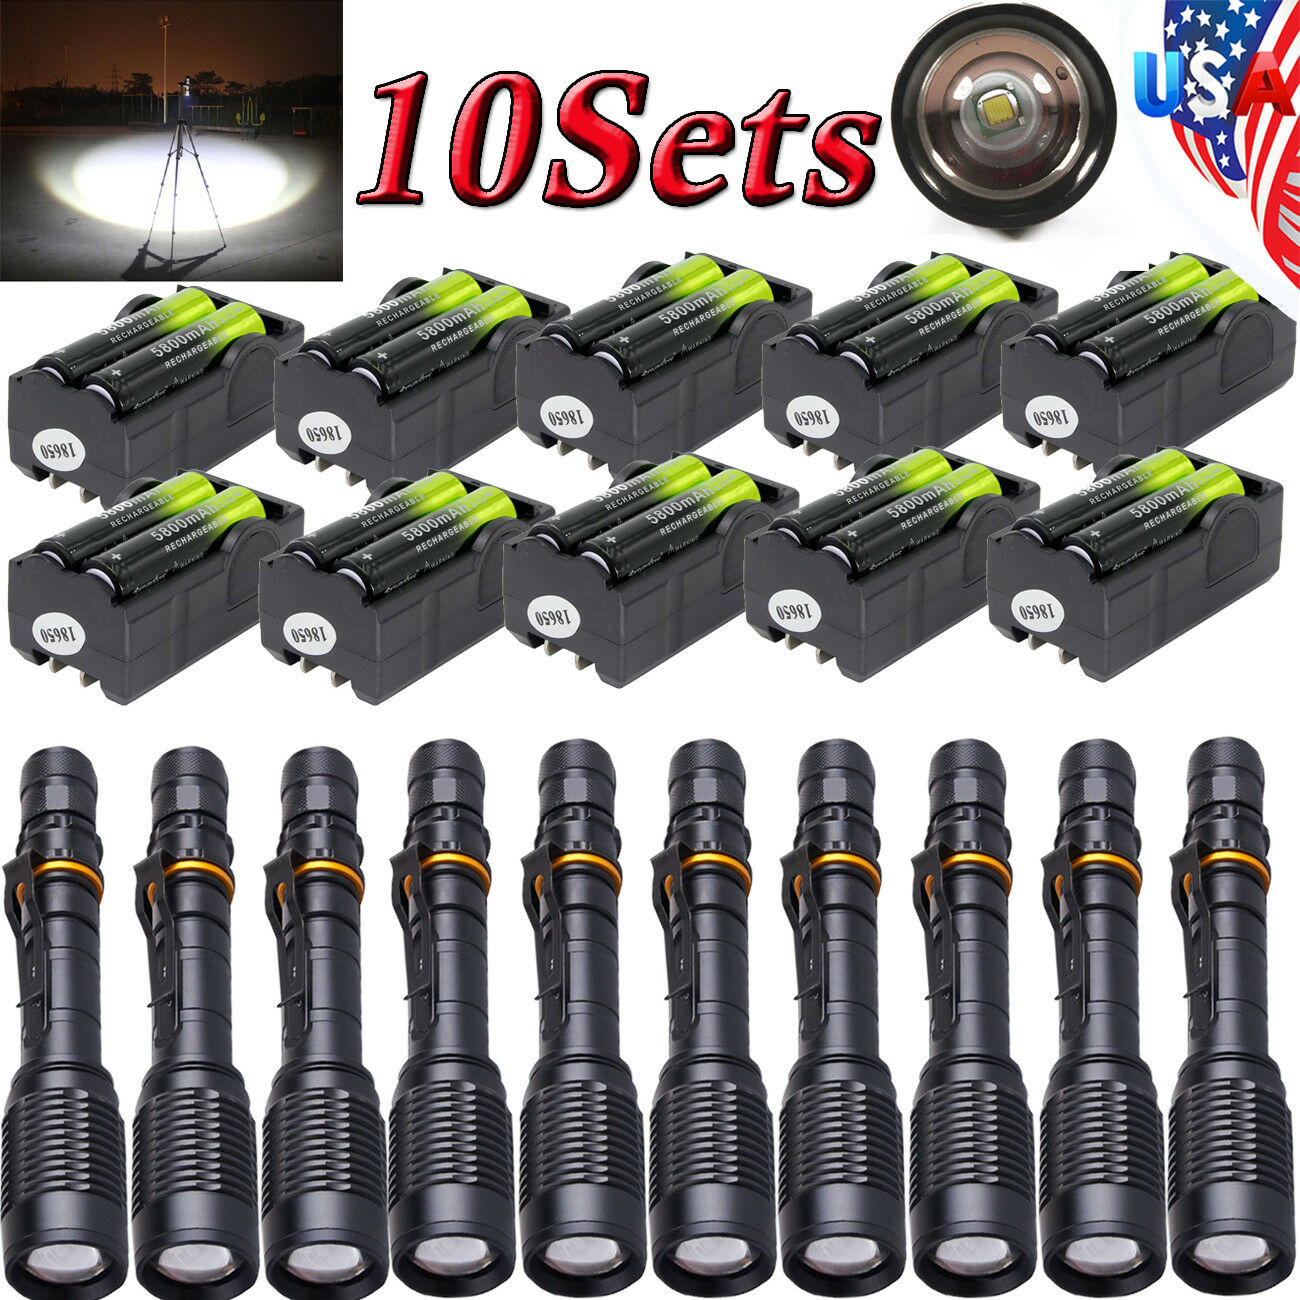 10Sets T6LED 90000LM Zoomable 5Modes Durable Flashlight Lamp Torch+18650+Charger